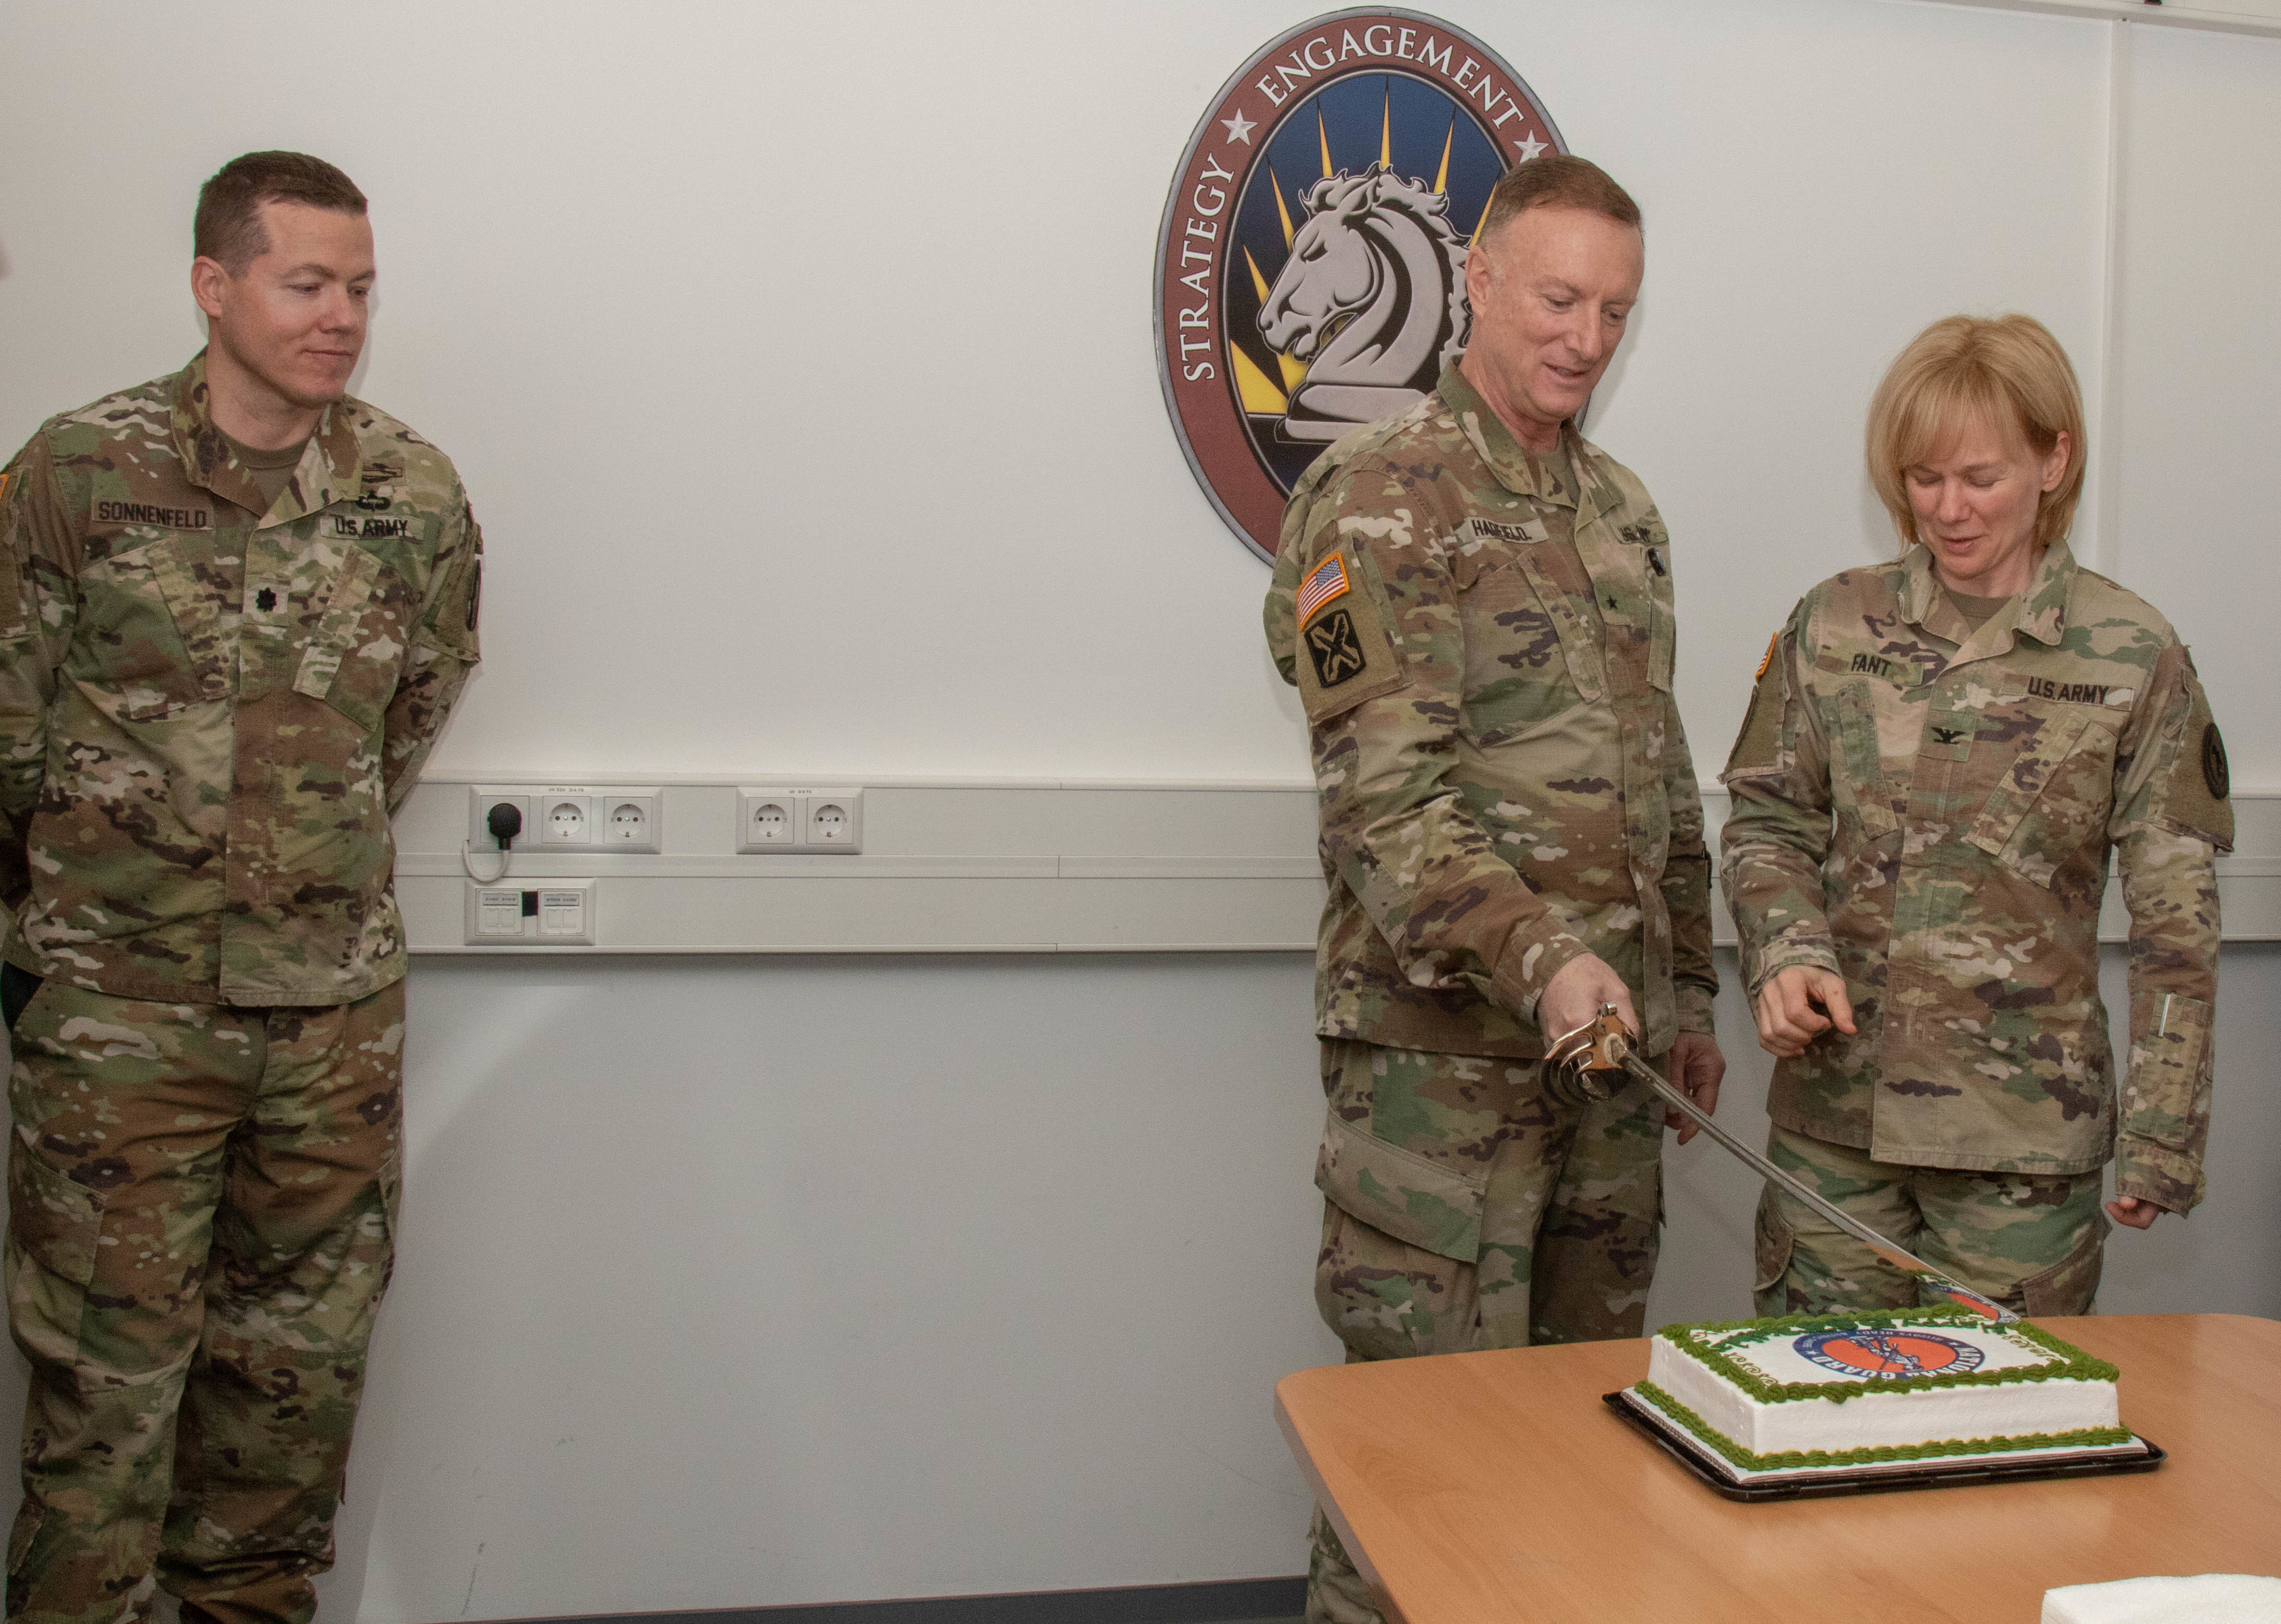 National Guard Brig. Gen. Gregory J. Hadfield, AFRICOM deputy director for intelligence and Col. Patricia Fant, chief of the National Guard Integration, cut the cake to celebrate the National Guard's 383rd at Kelley Barracks Dec. 13.  Within AFRICOM, the National Guard plays several roles in promoting a stable security environment in Africa. One way this is accomplished is through the State Partnership Program, with 15 African nations partnered with 13 state National Guards. (U.S. Army photo by Staff Sgt. Flor Gonzalez/Released)